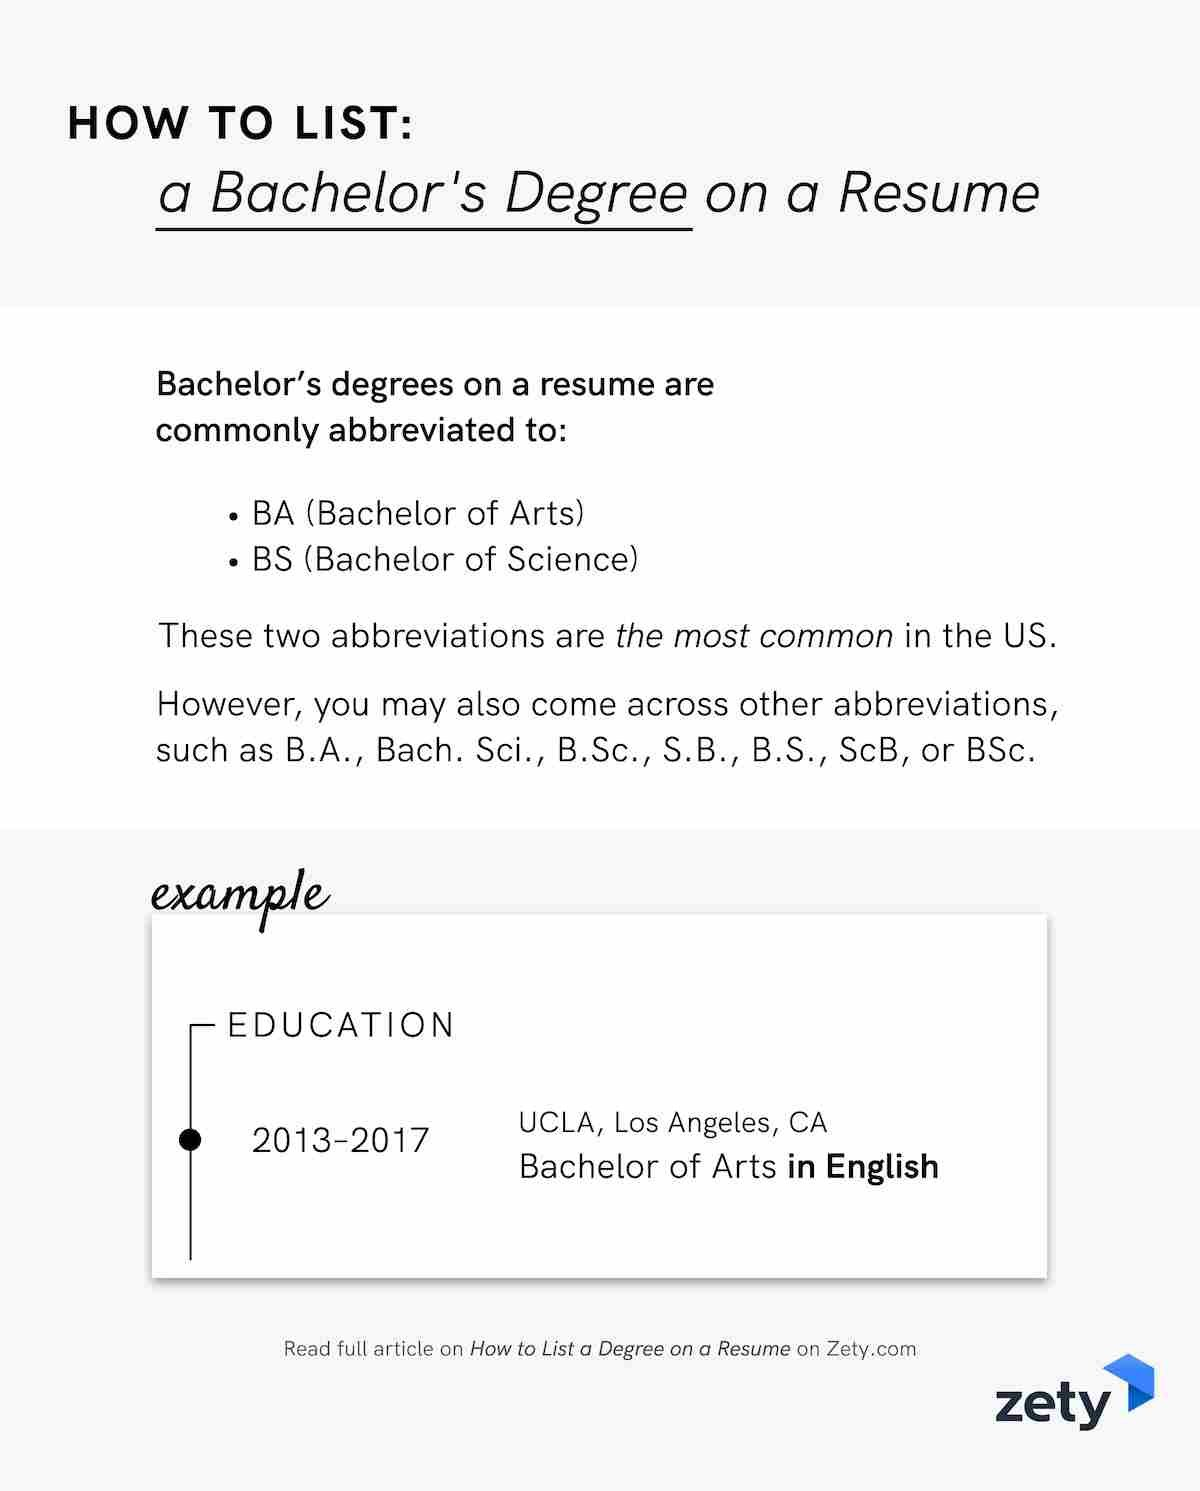 How to list a Bachelor's Degree on a Resume